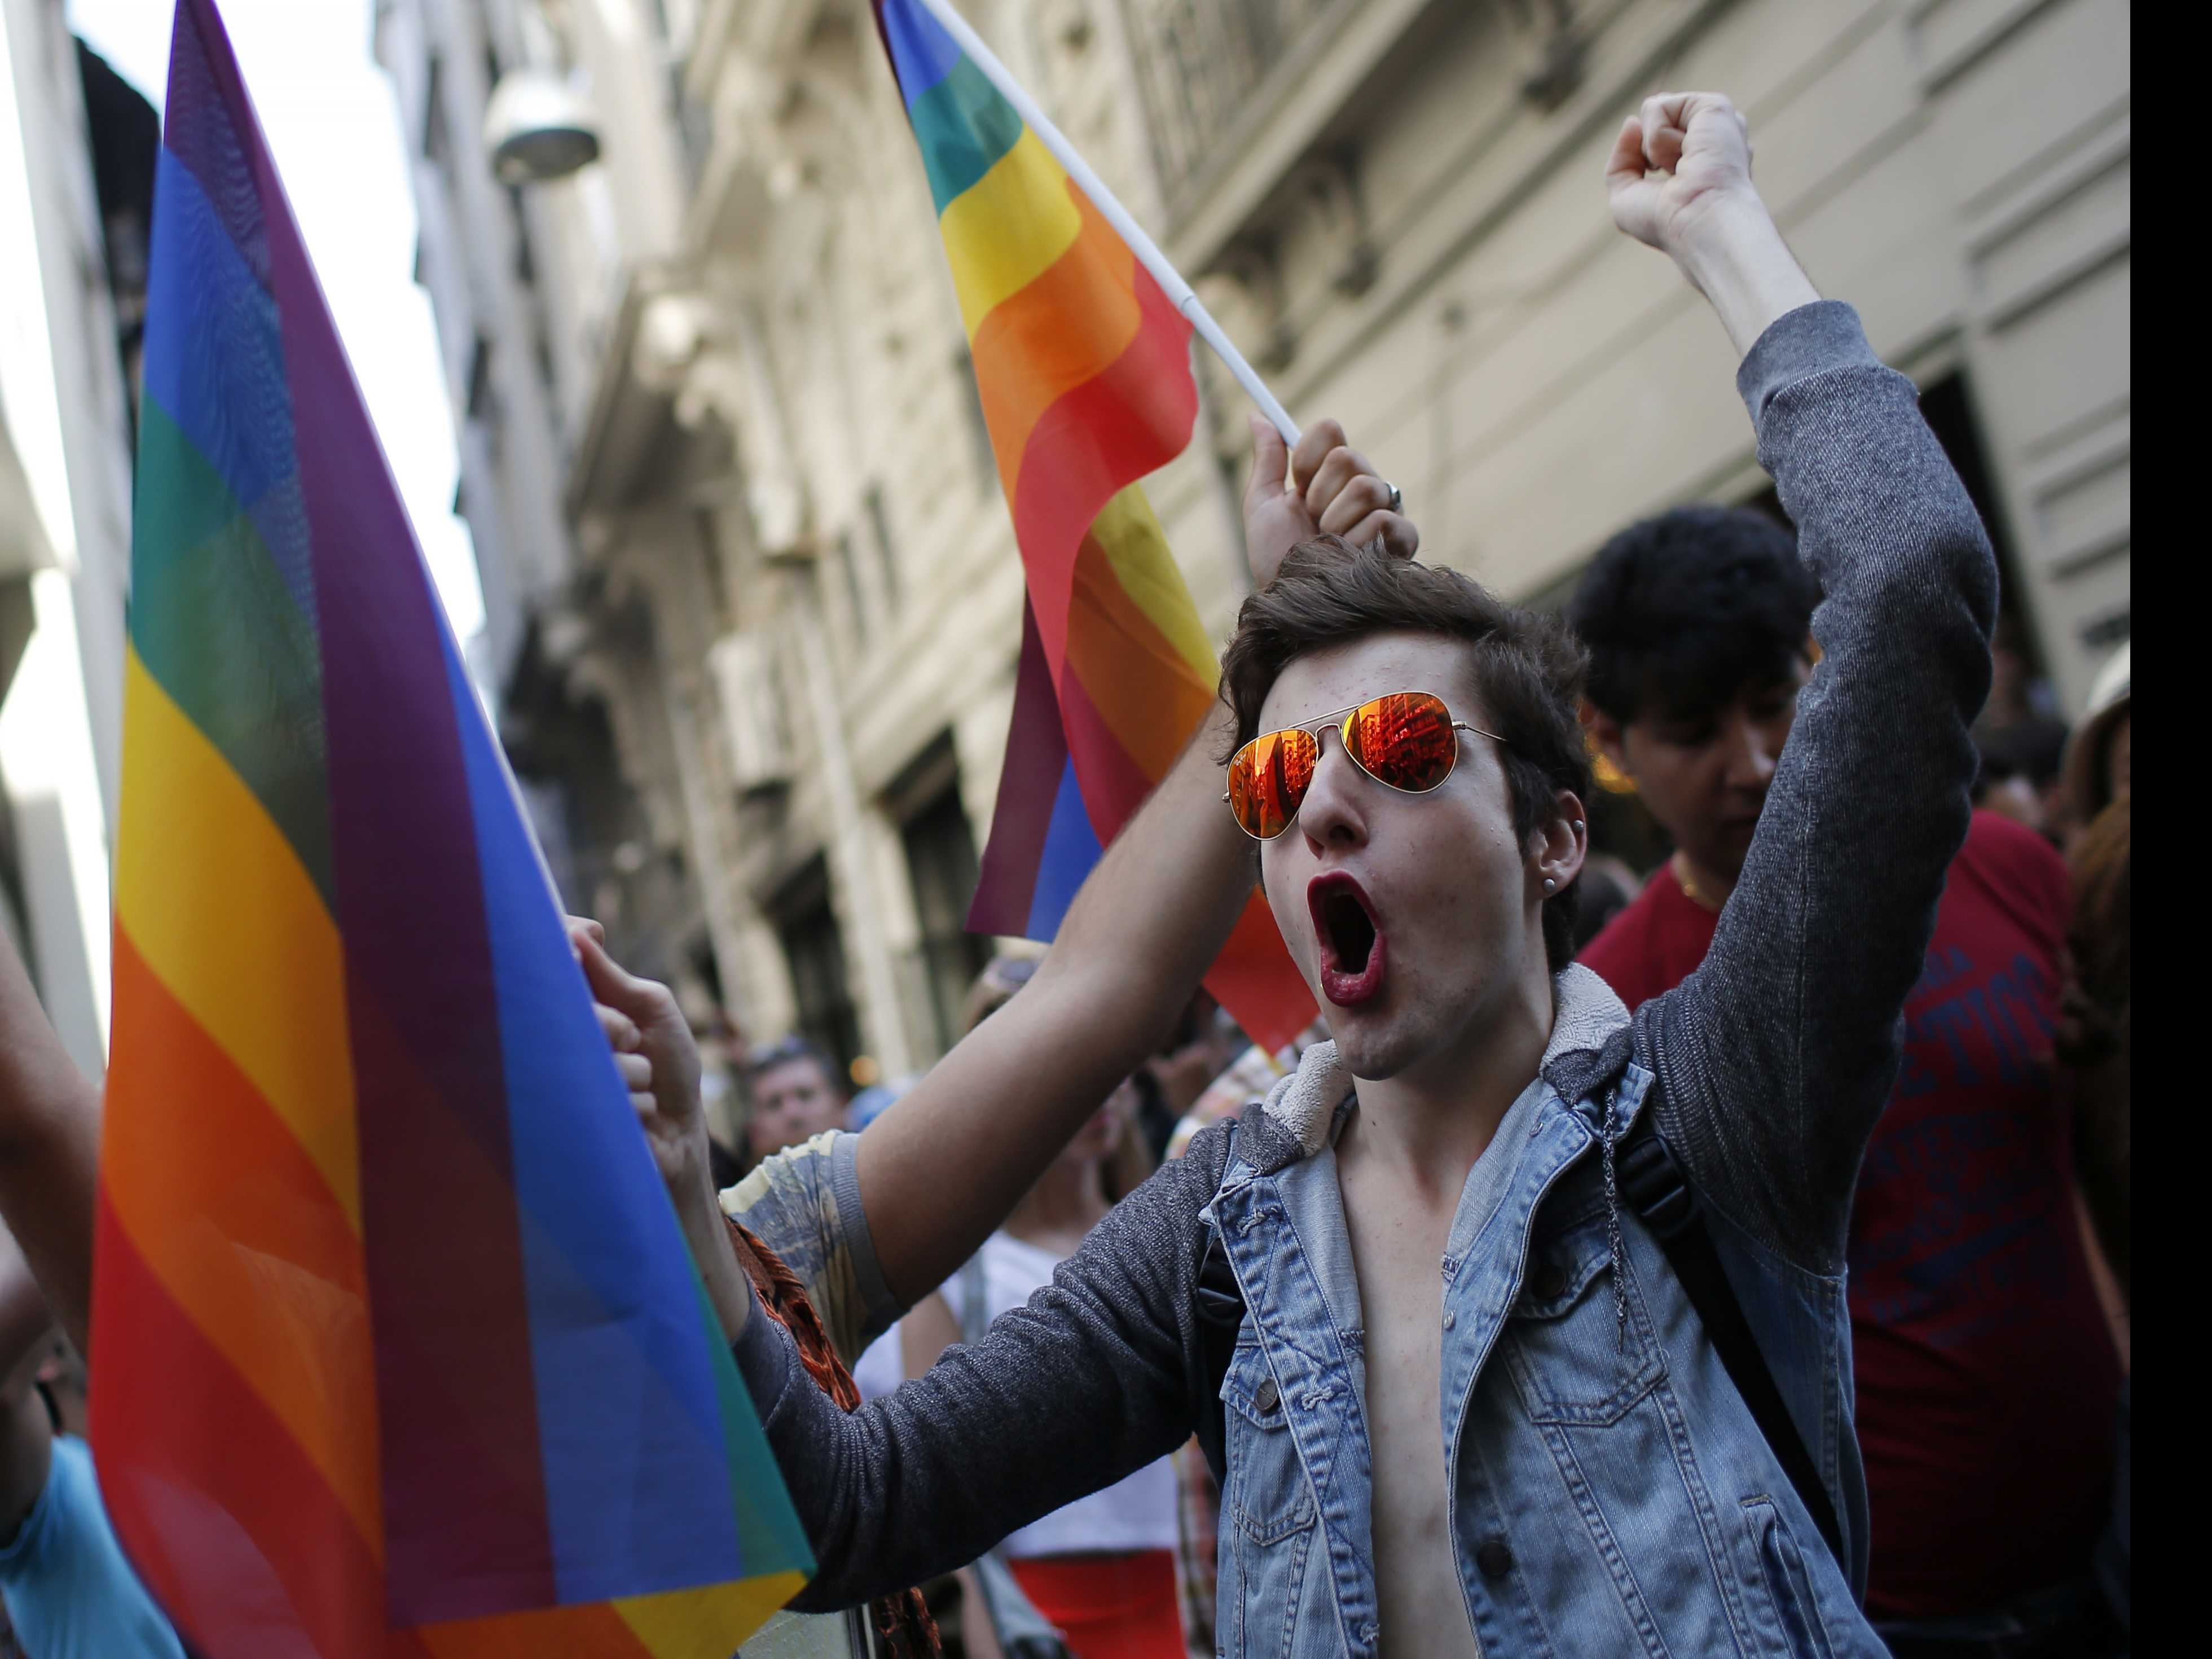 Istanbul Pride March to Go on Despite Governor's Ban